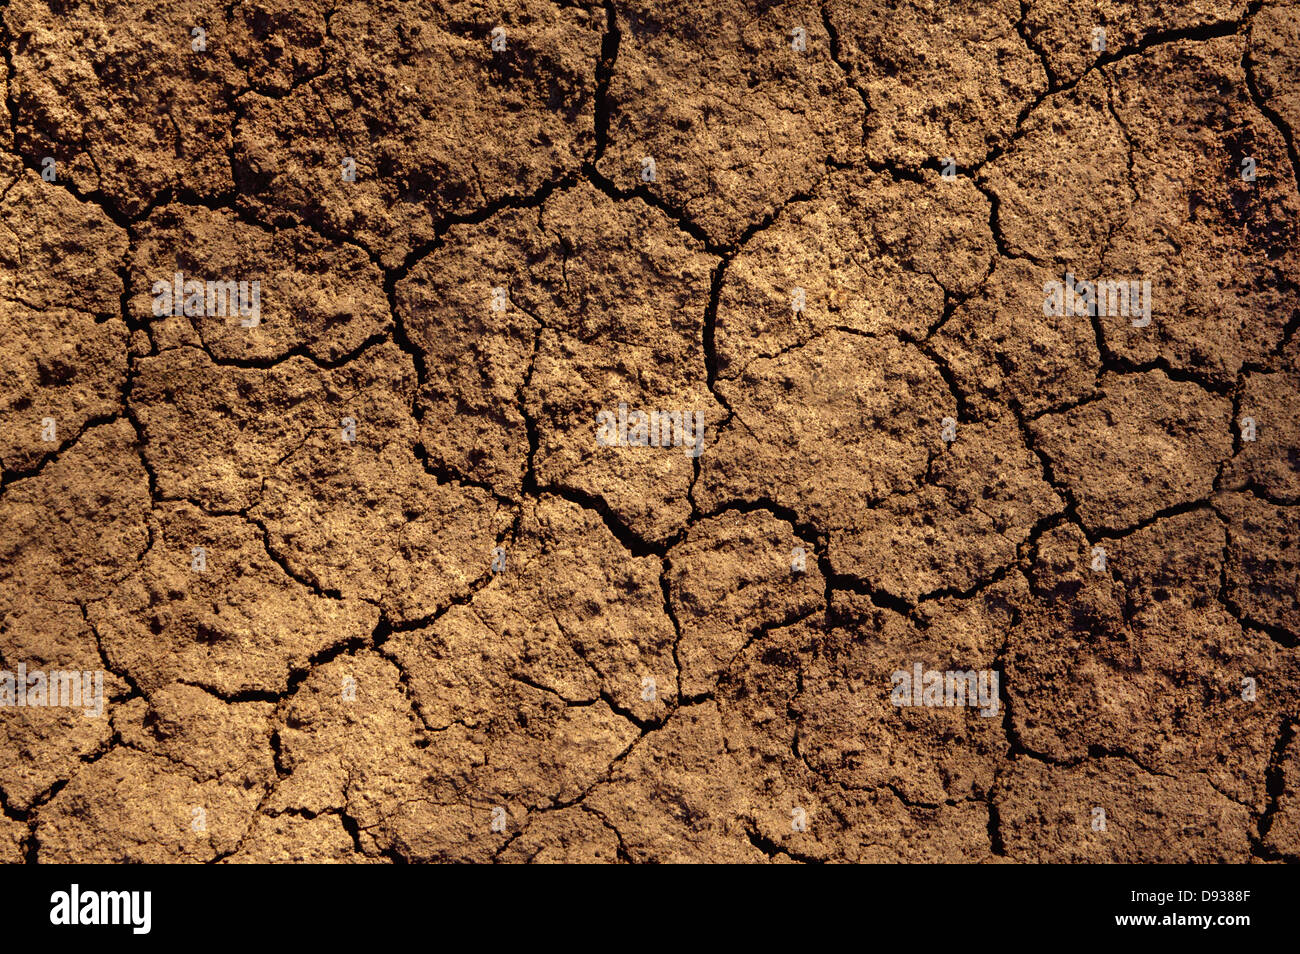 Dry soil texture on the ground - Stock Image